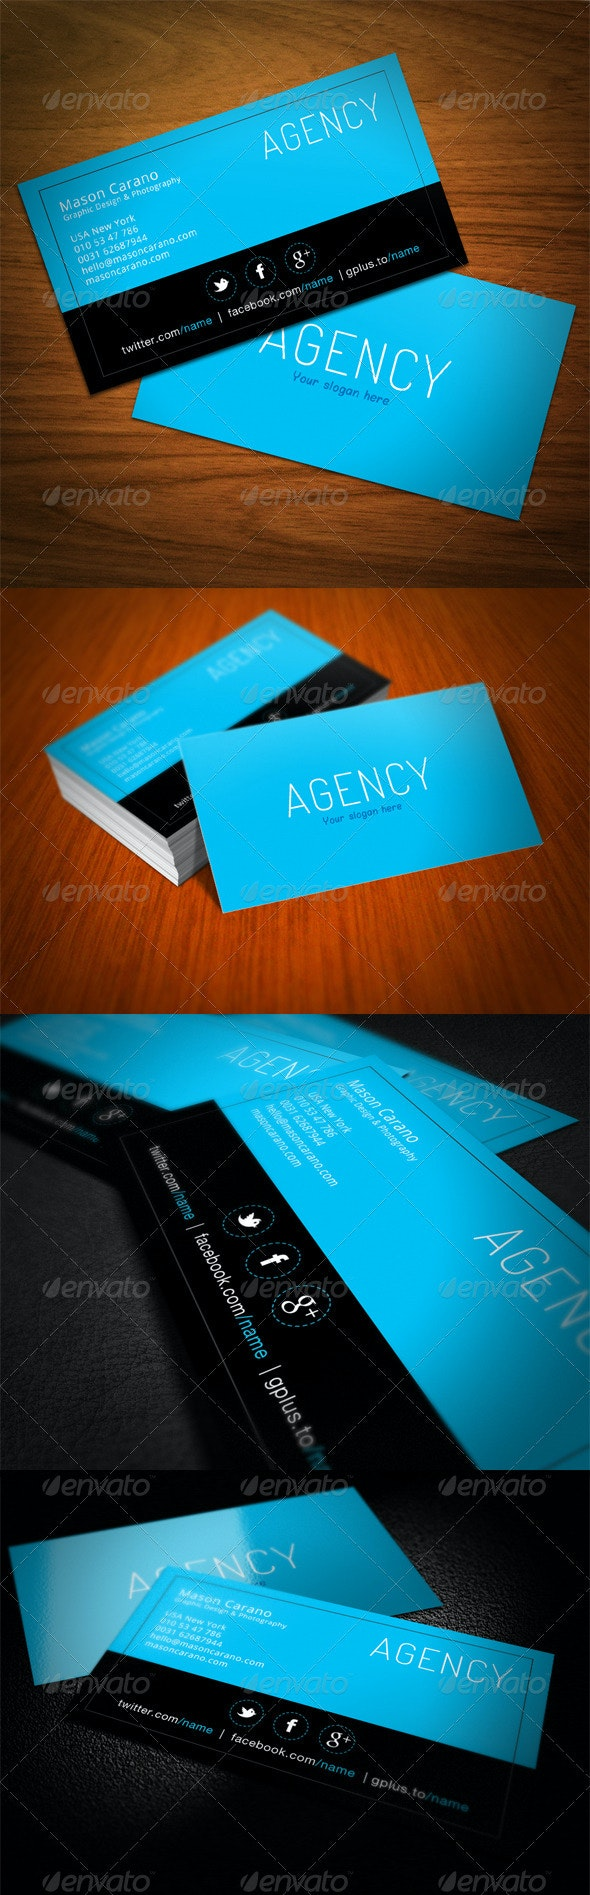 Agency Business Card - Corporate Business Cards